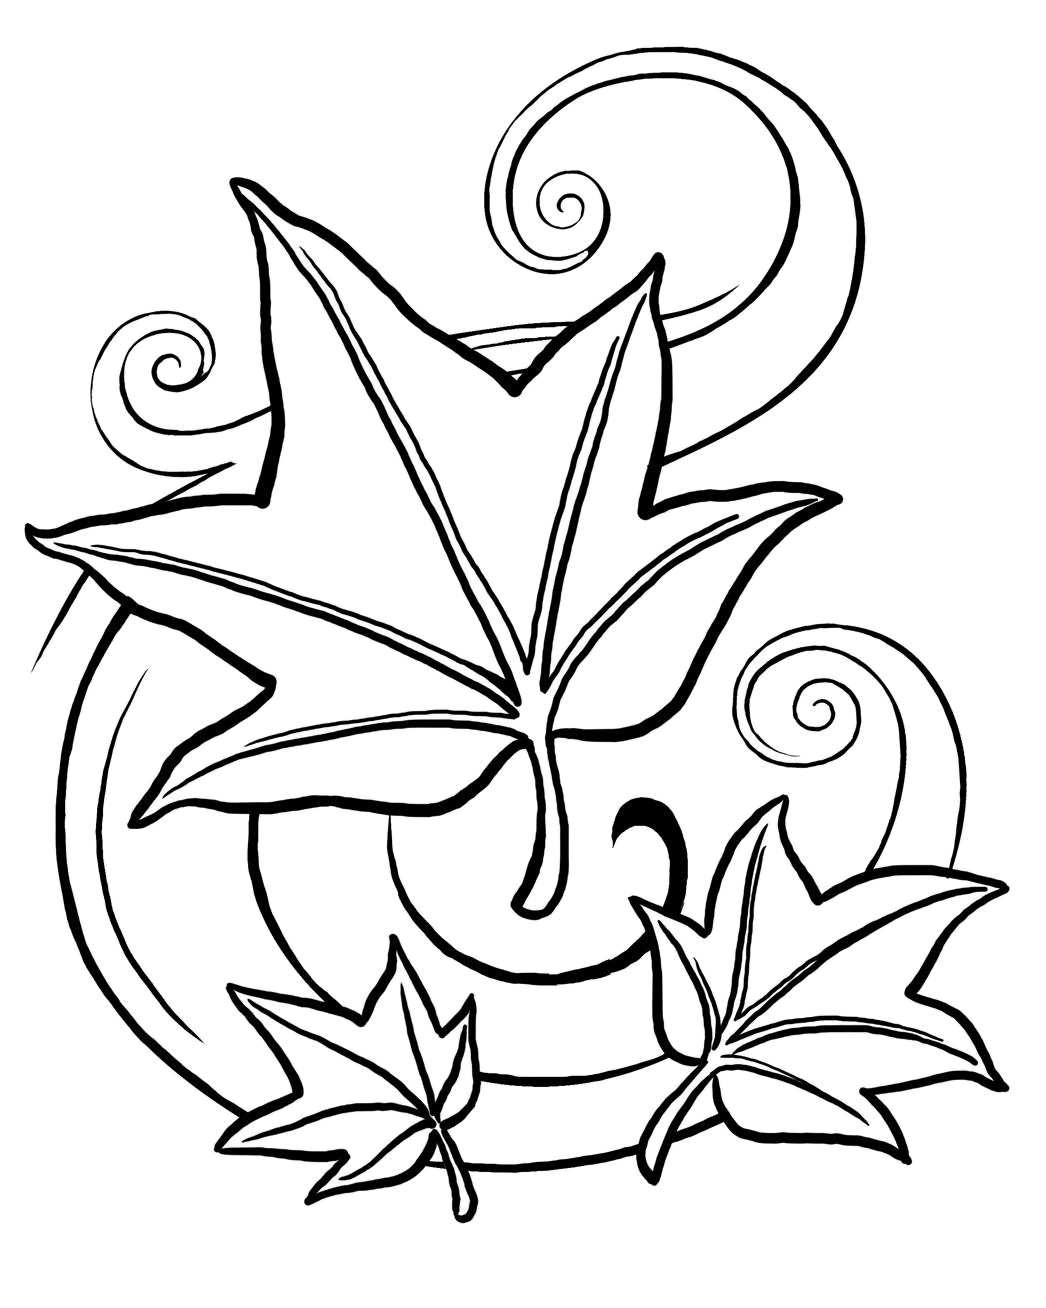 Fall coloring pages clipart panda free clipart images for Coloring pages for autumn